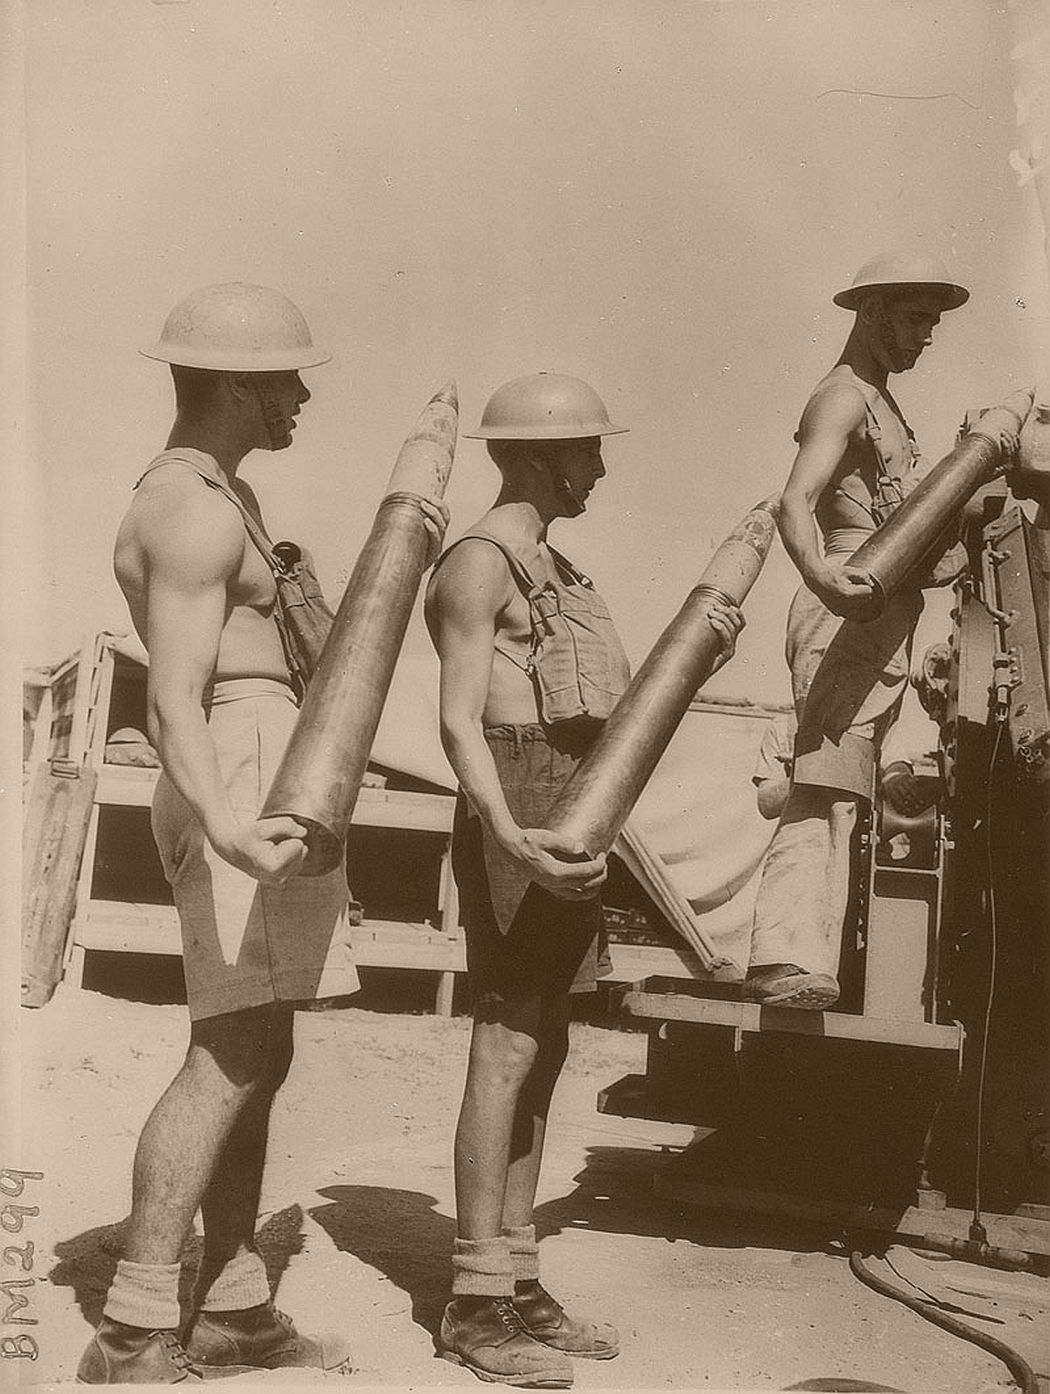 historic-world-war-ii-photos-of-troops-in-north-africa-late-1940-09